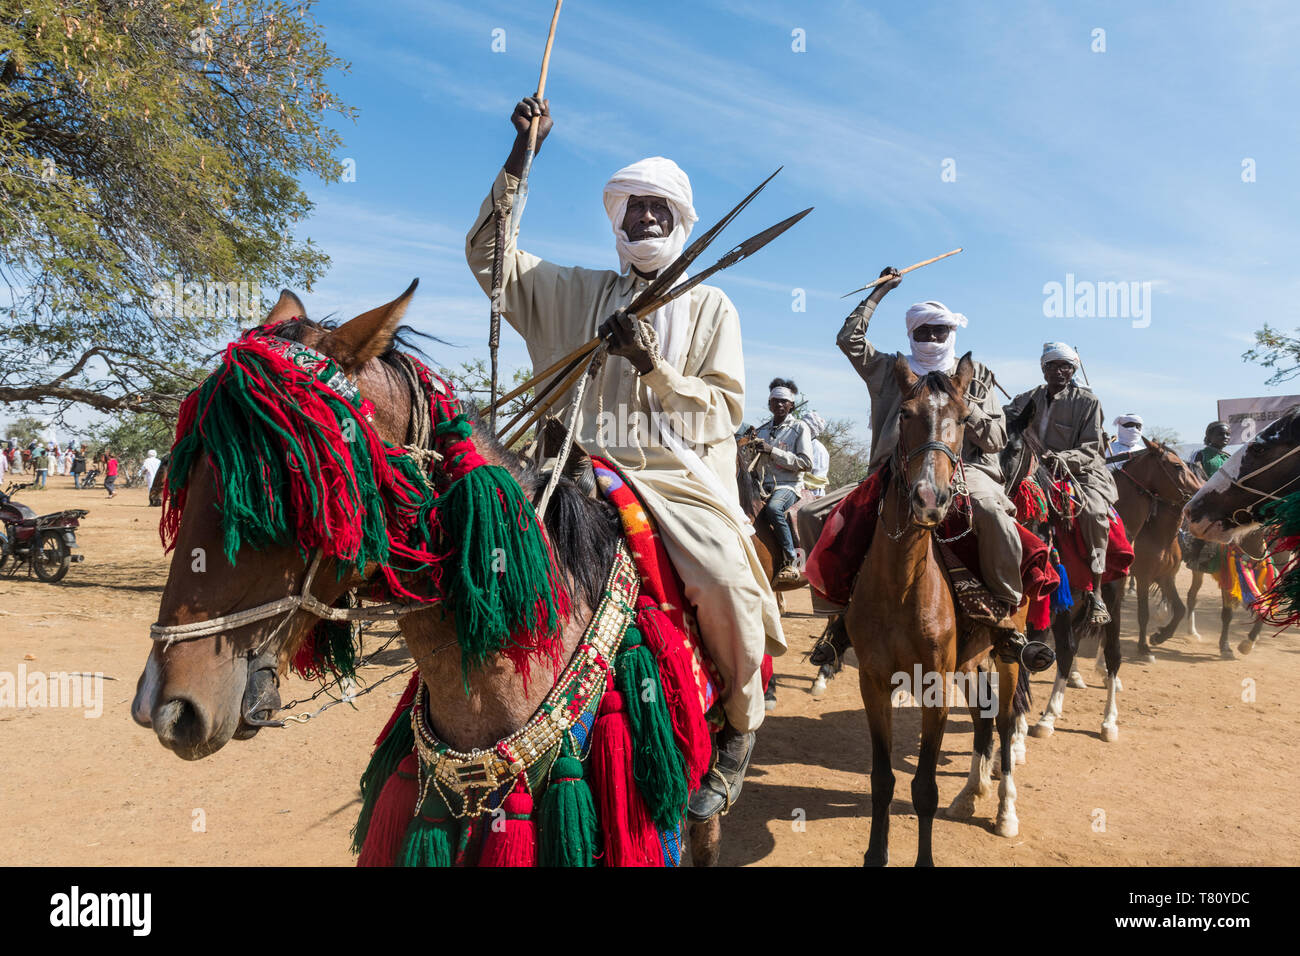 Colourful horse rider at a Tribal festival, Sahel, Chad, Africa - Stock Image